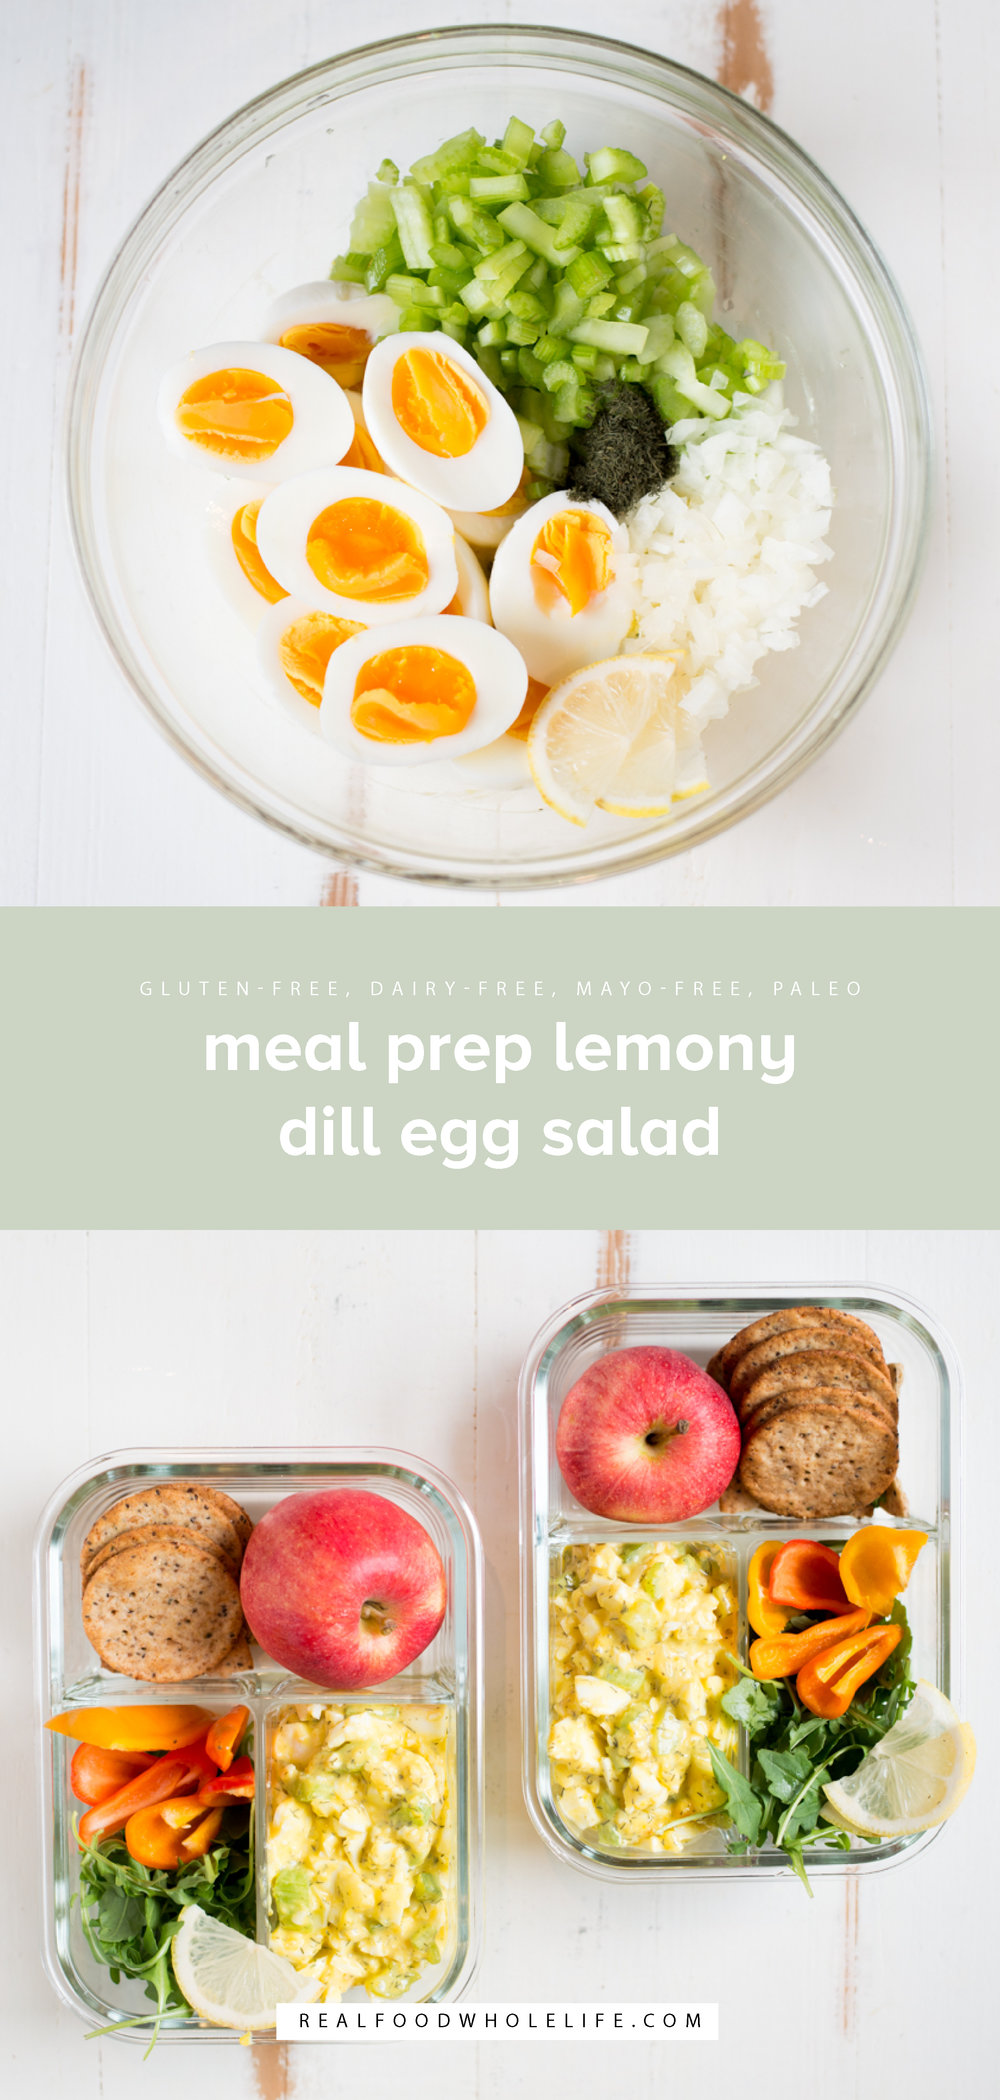 Meal Prep Lemony Dill Egg Salad is fresh, bright and super simple to make ahead. A gluten-free, dairy-free, mayo-free recipe. #realfoodwholelife #realfoodwholeliferecipe #glutenfree #glutenfreerecipe #dairyfree #dairyfreerecipe #healthy #healthyrecipe #easyrecipe #quickrecipe #cleaneating #whole30 #whole30recipe #eggsalad #mealprep